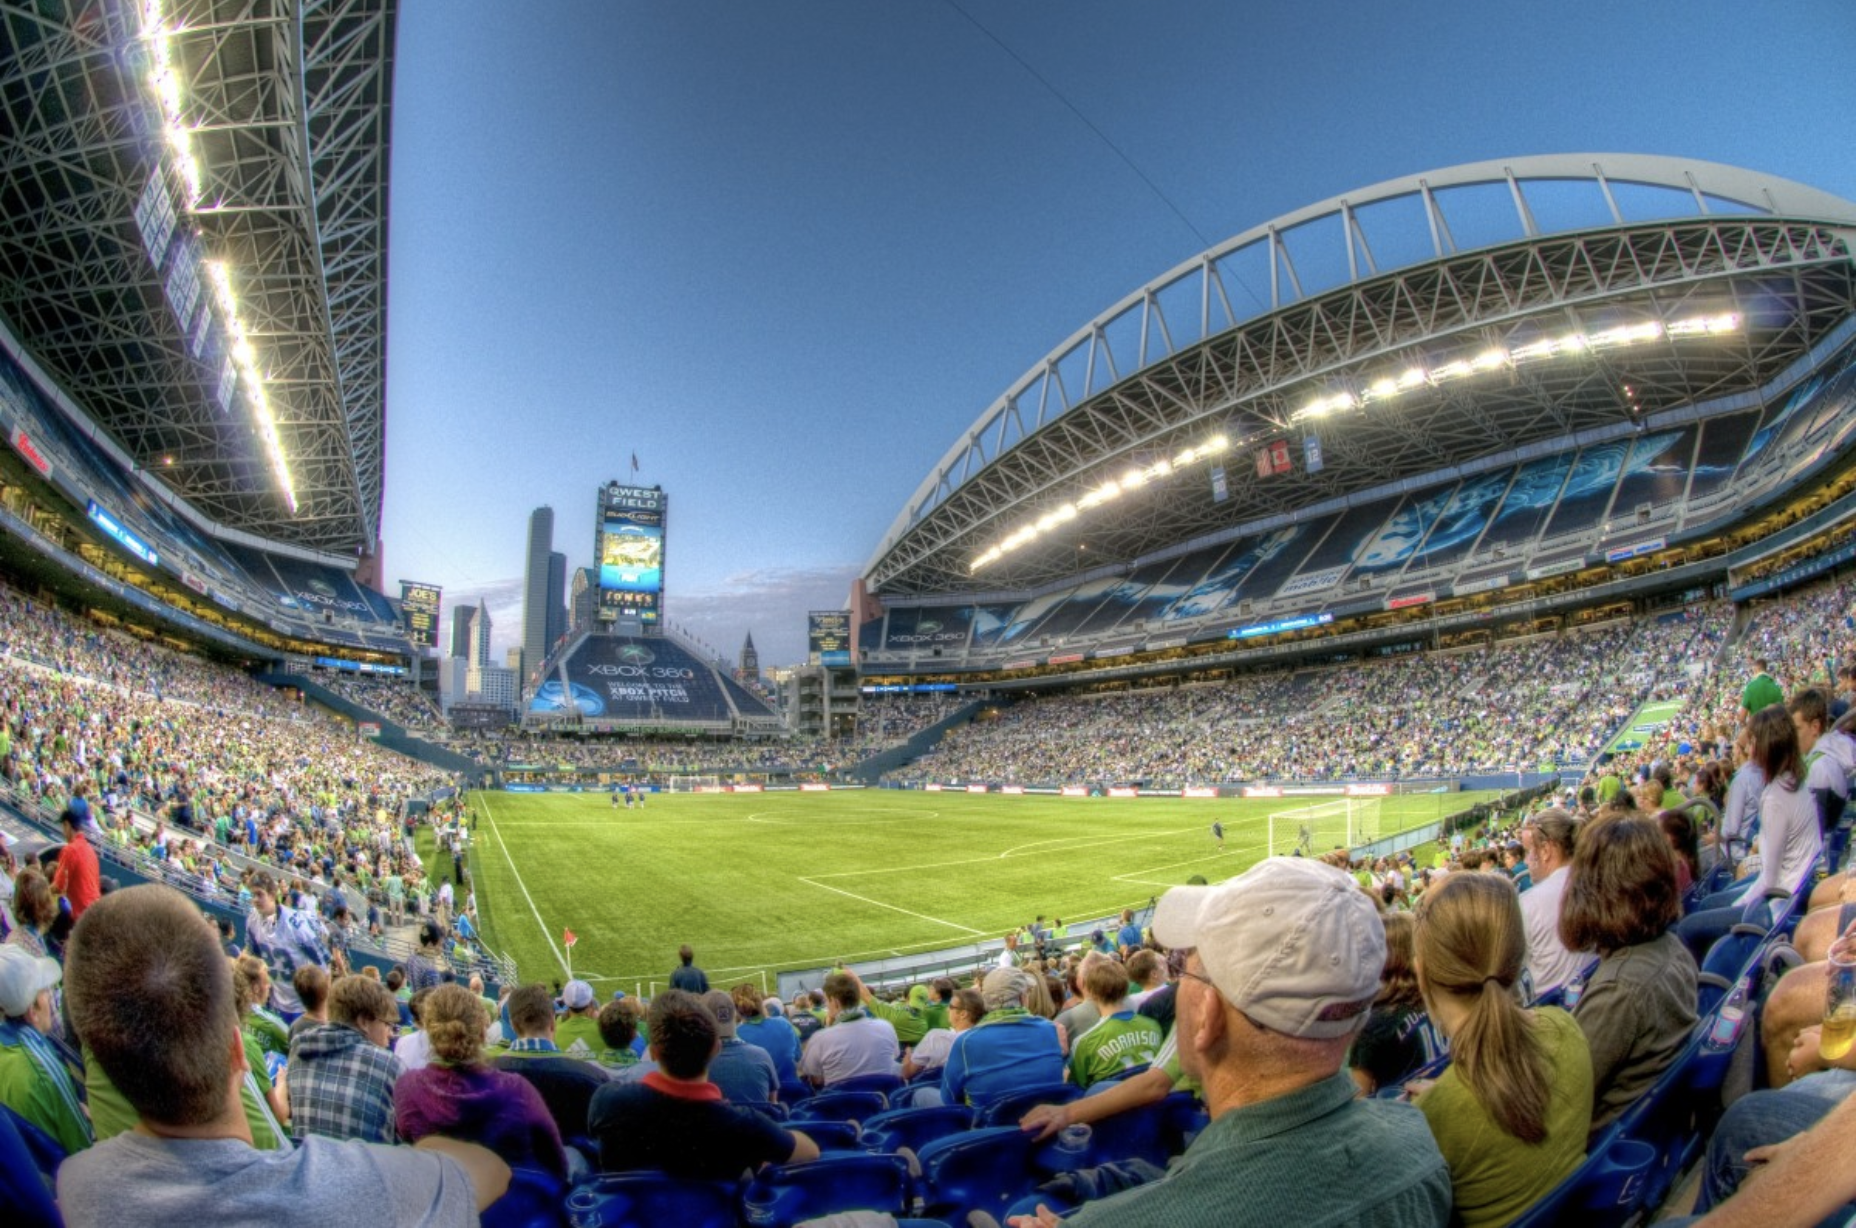 CityU's Night at the Sounders